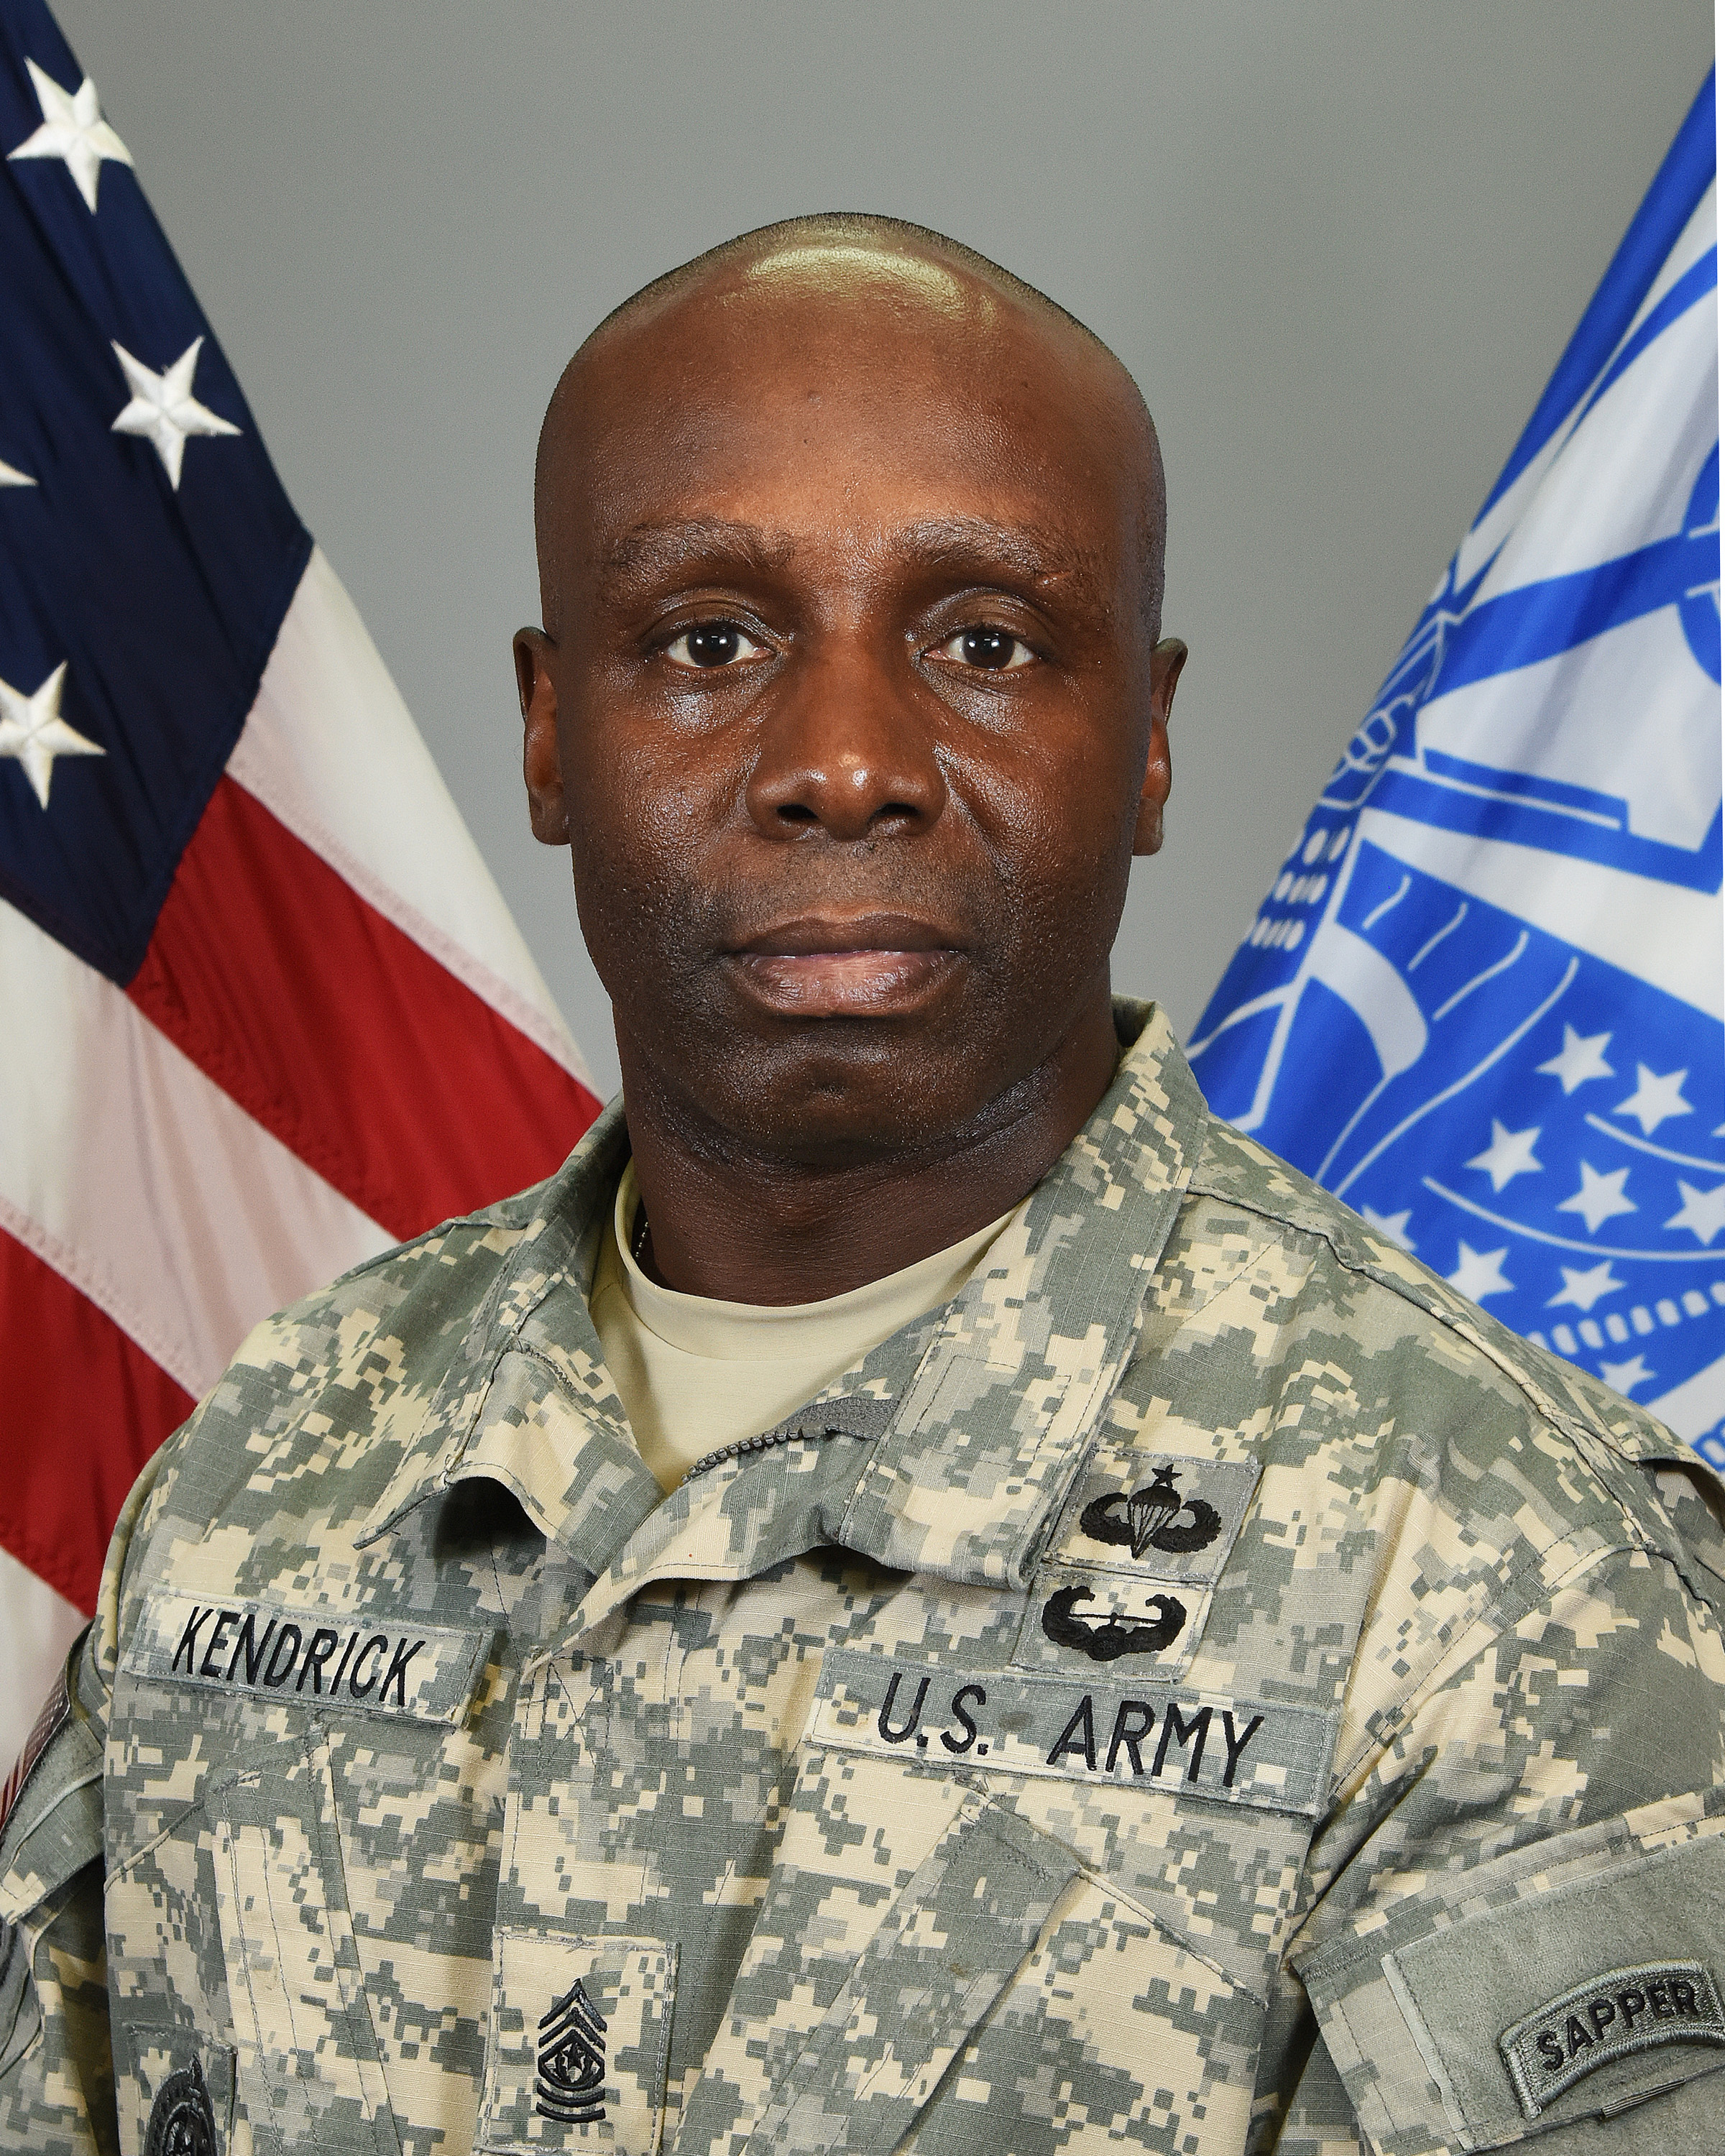 CJTF-HOA Senior Enlisted Leader Biography